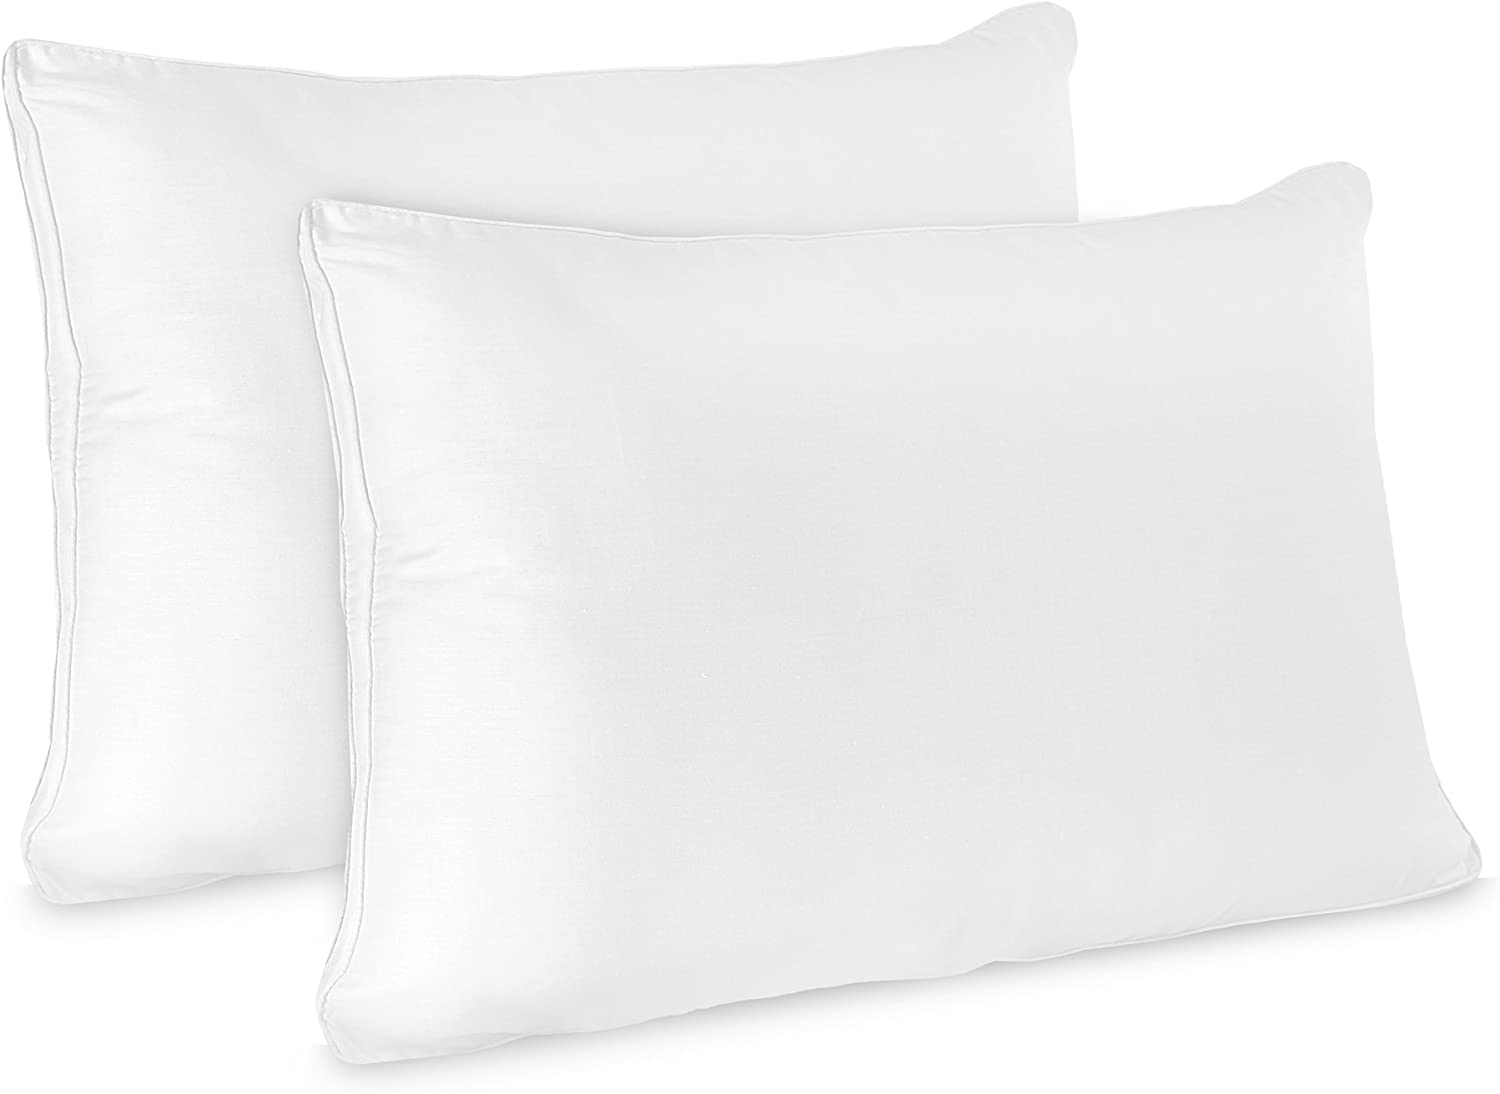 Pillow Low Profile Flat Hypoallergenic Fiber Stomach Sleeper Jumbo Set of 2